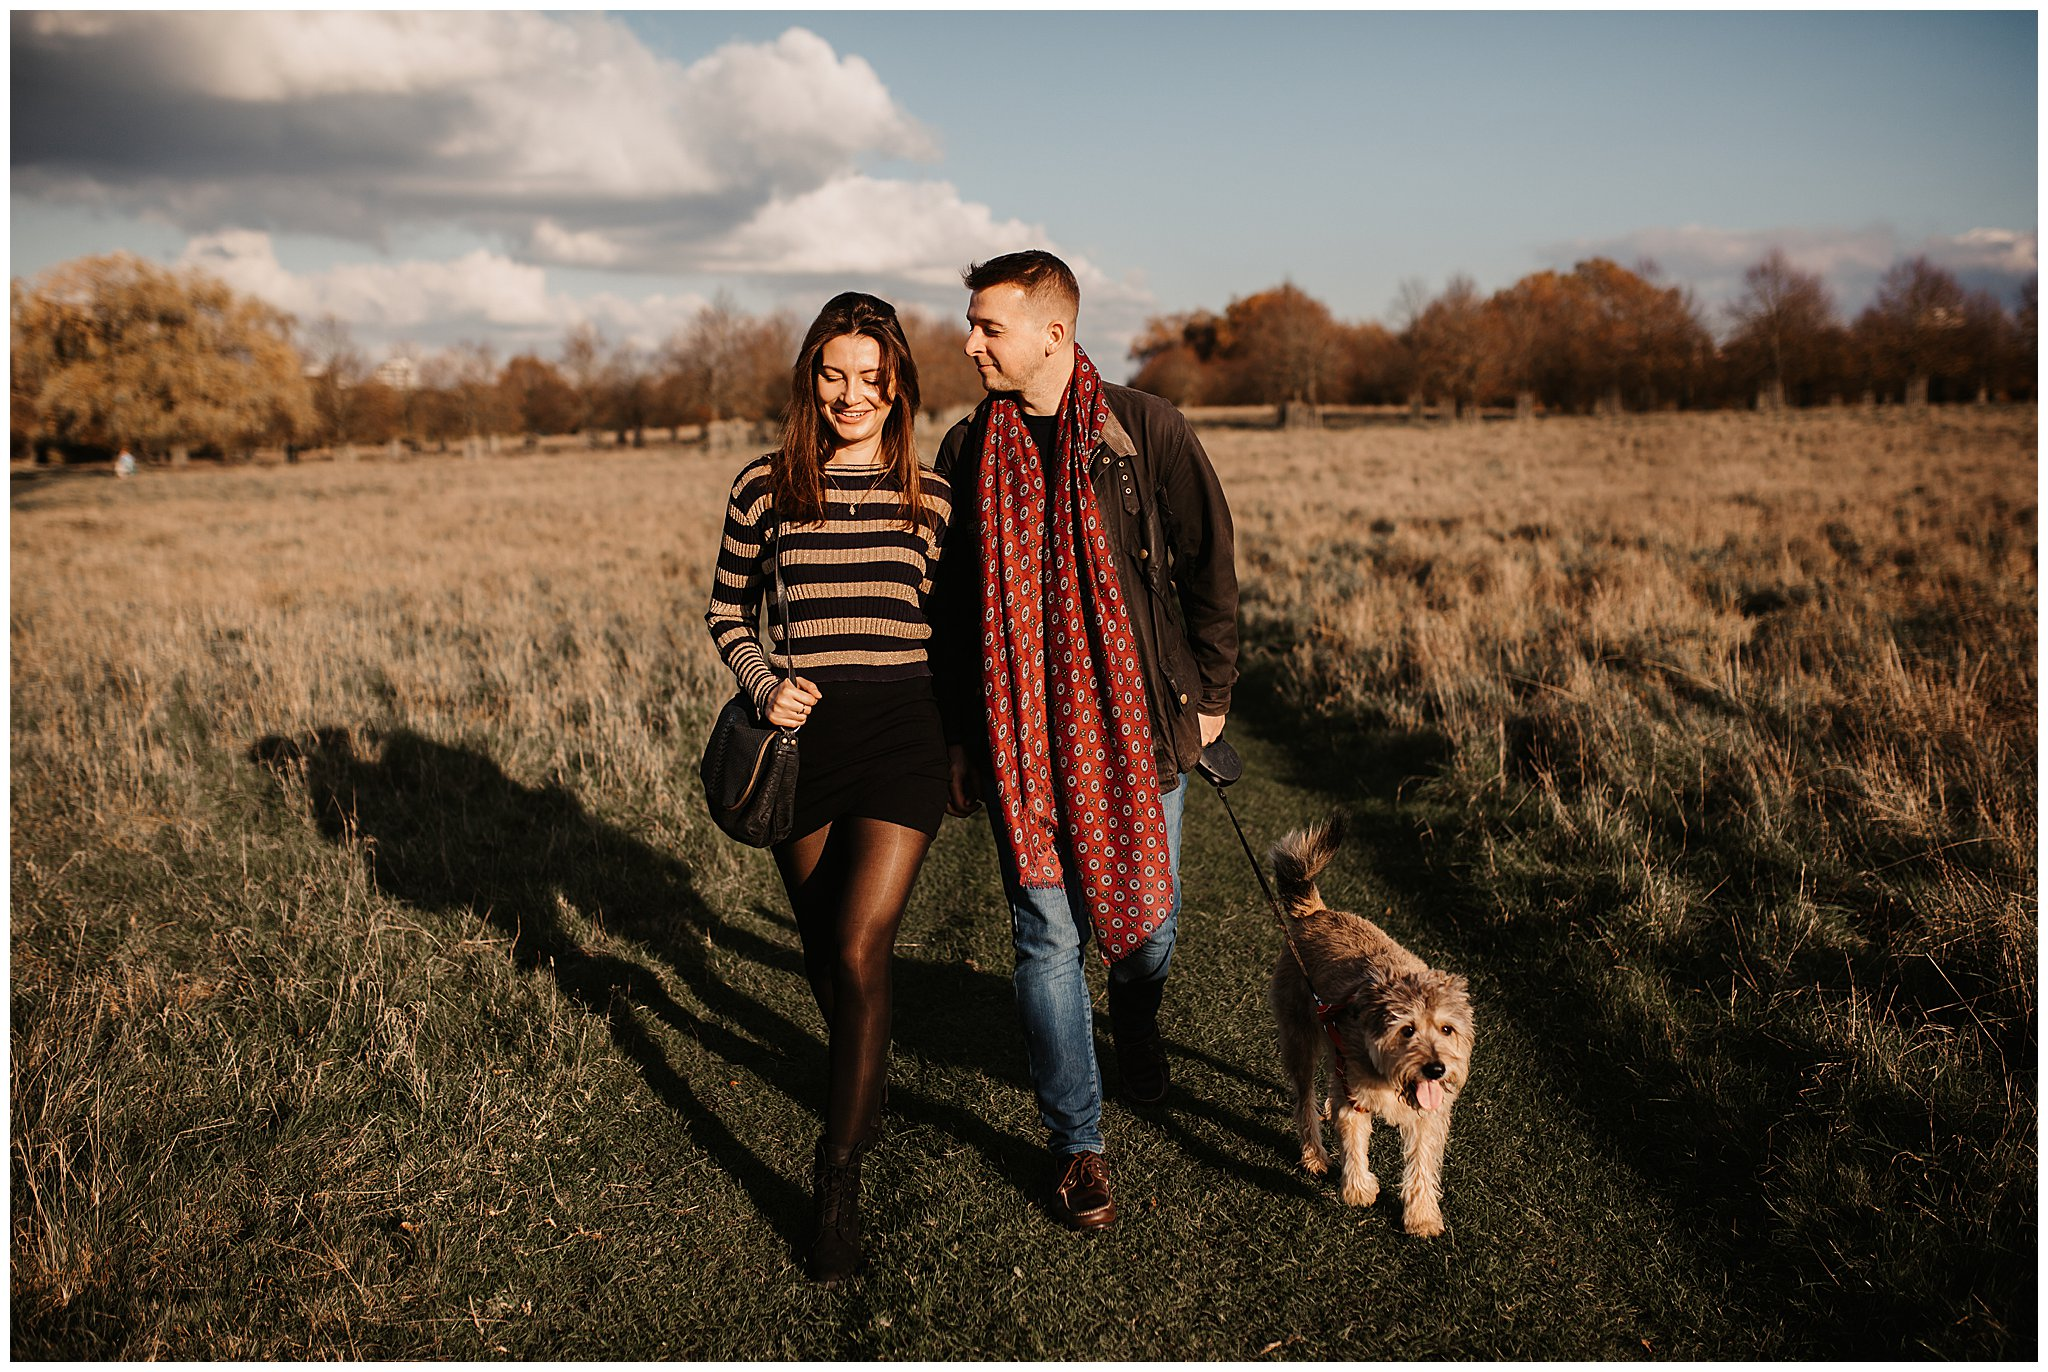 Charlie & Laurence Autumn Bushy Park Couple Shoot-12.jpg